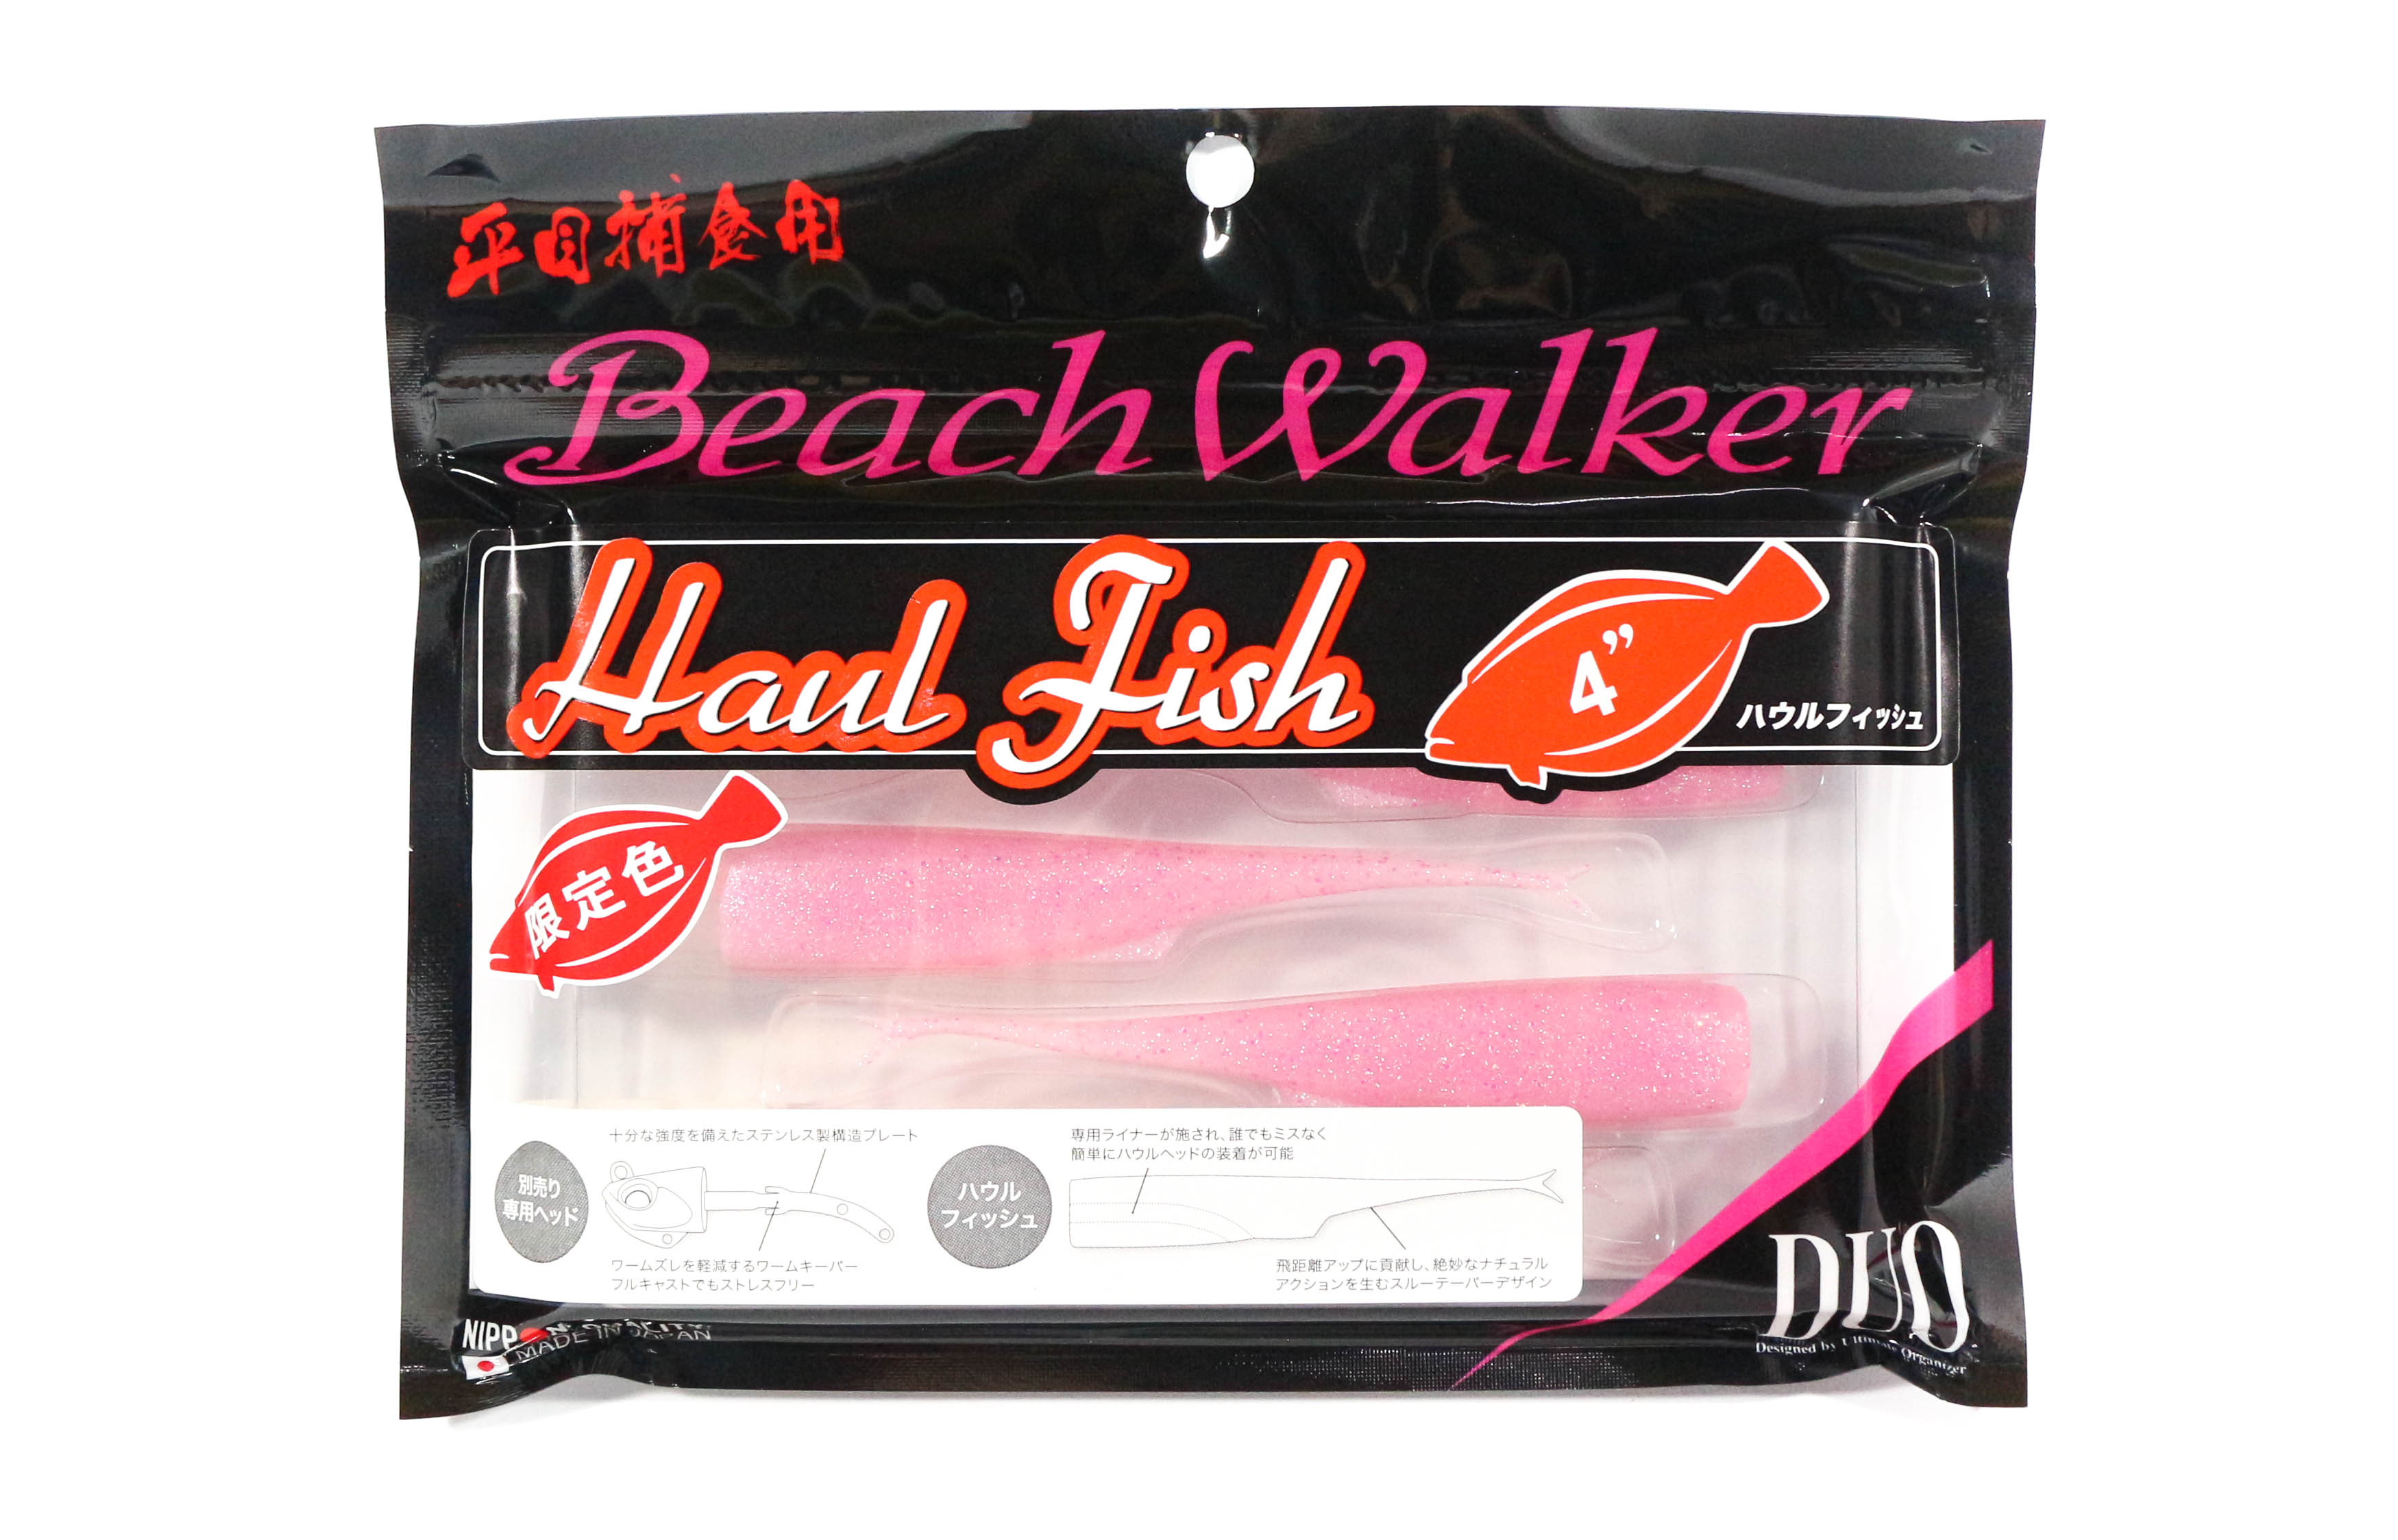 Duo Beach Walker Soft Plastic Haul Fish 4 Inches S904 (4189)